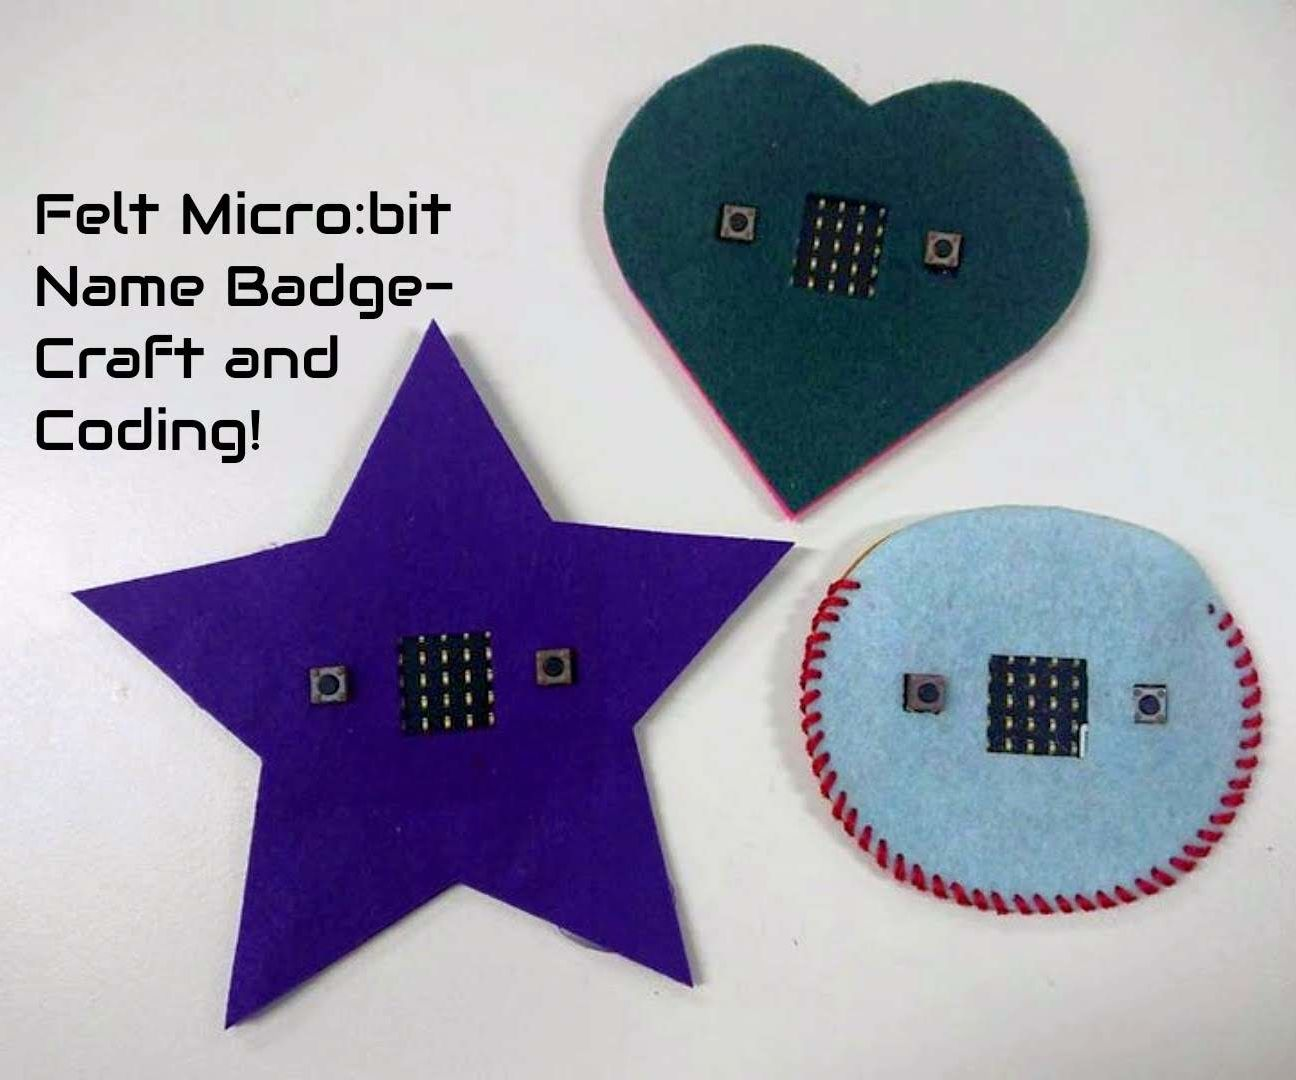 Felt Micro:bit Name Badge - Craft + Coding!